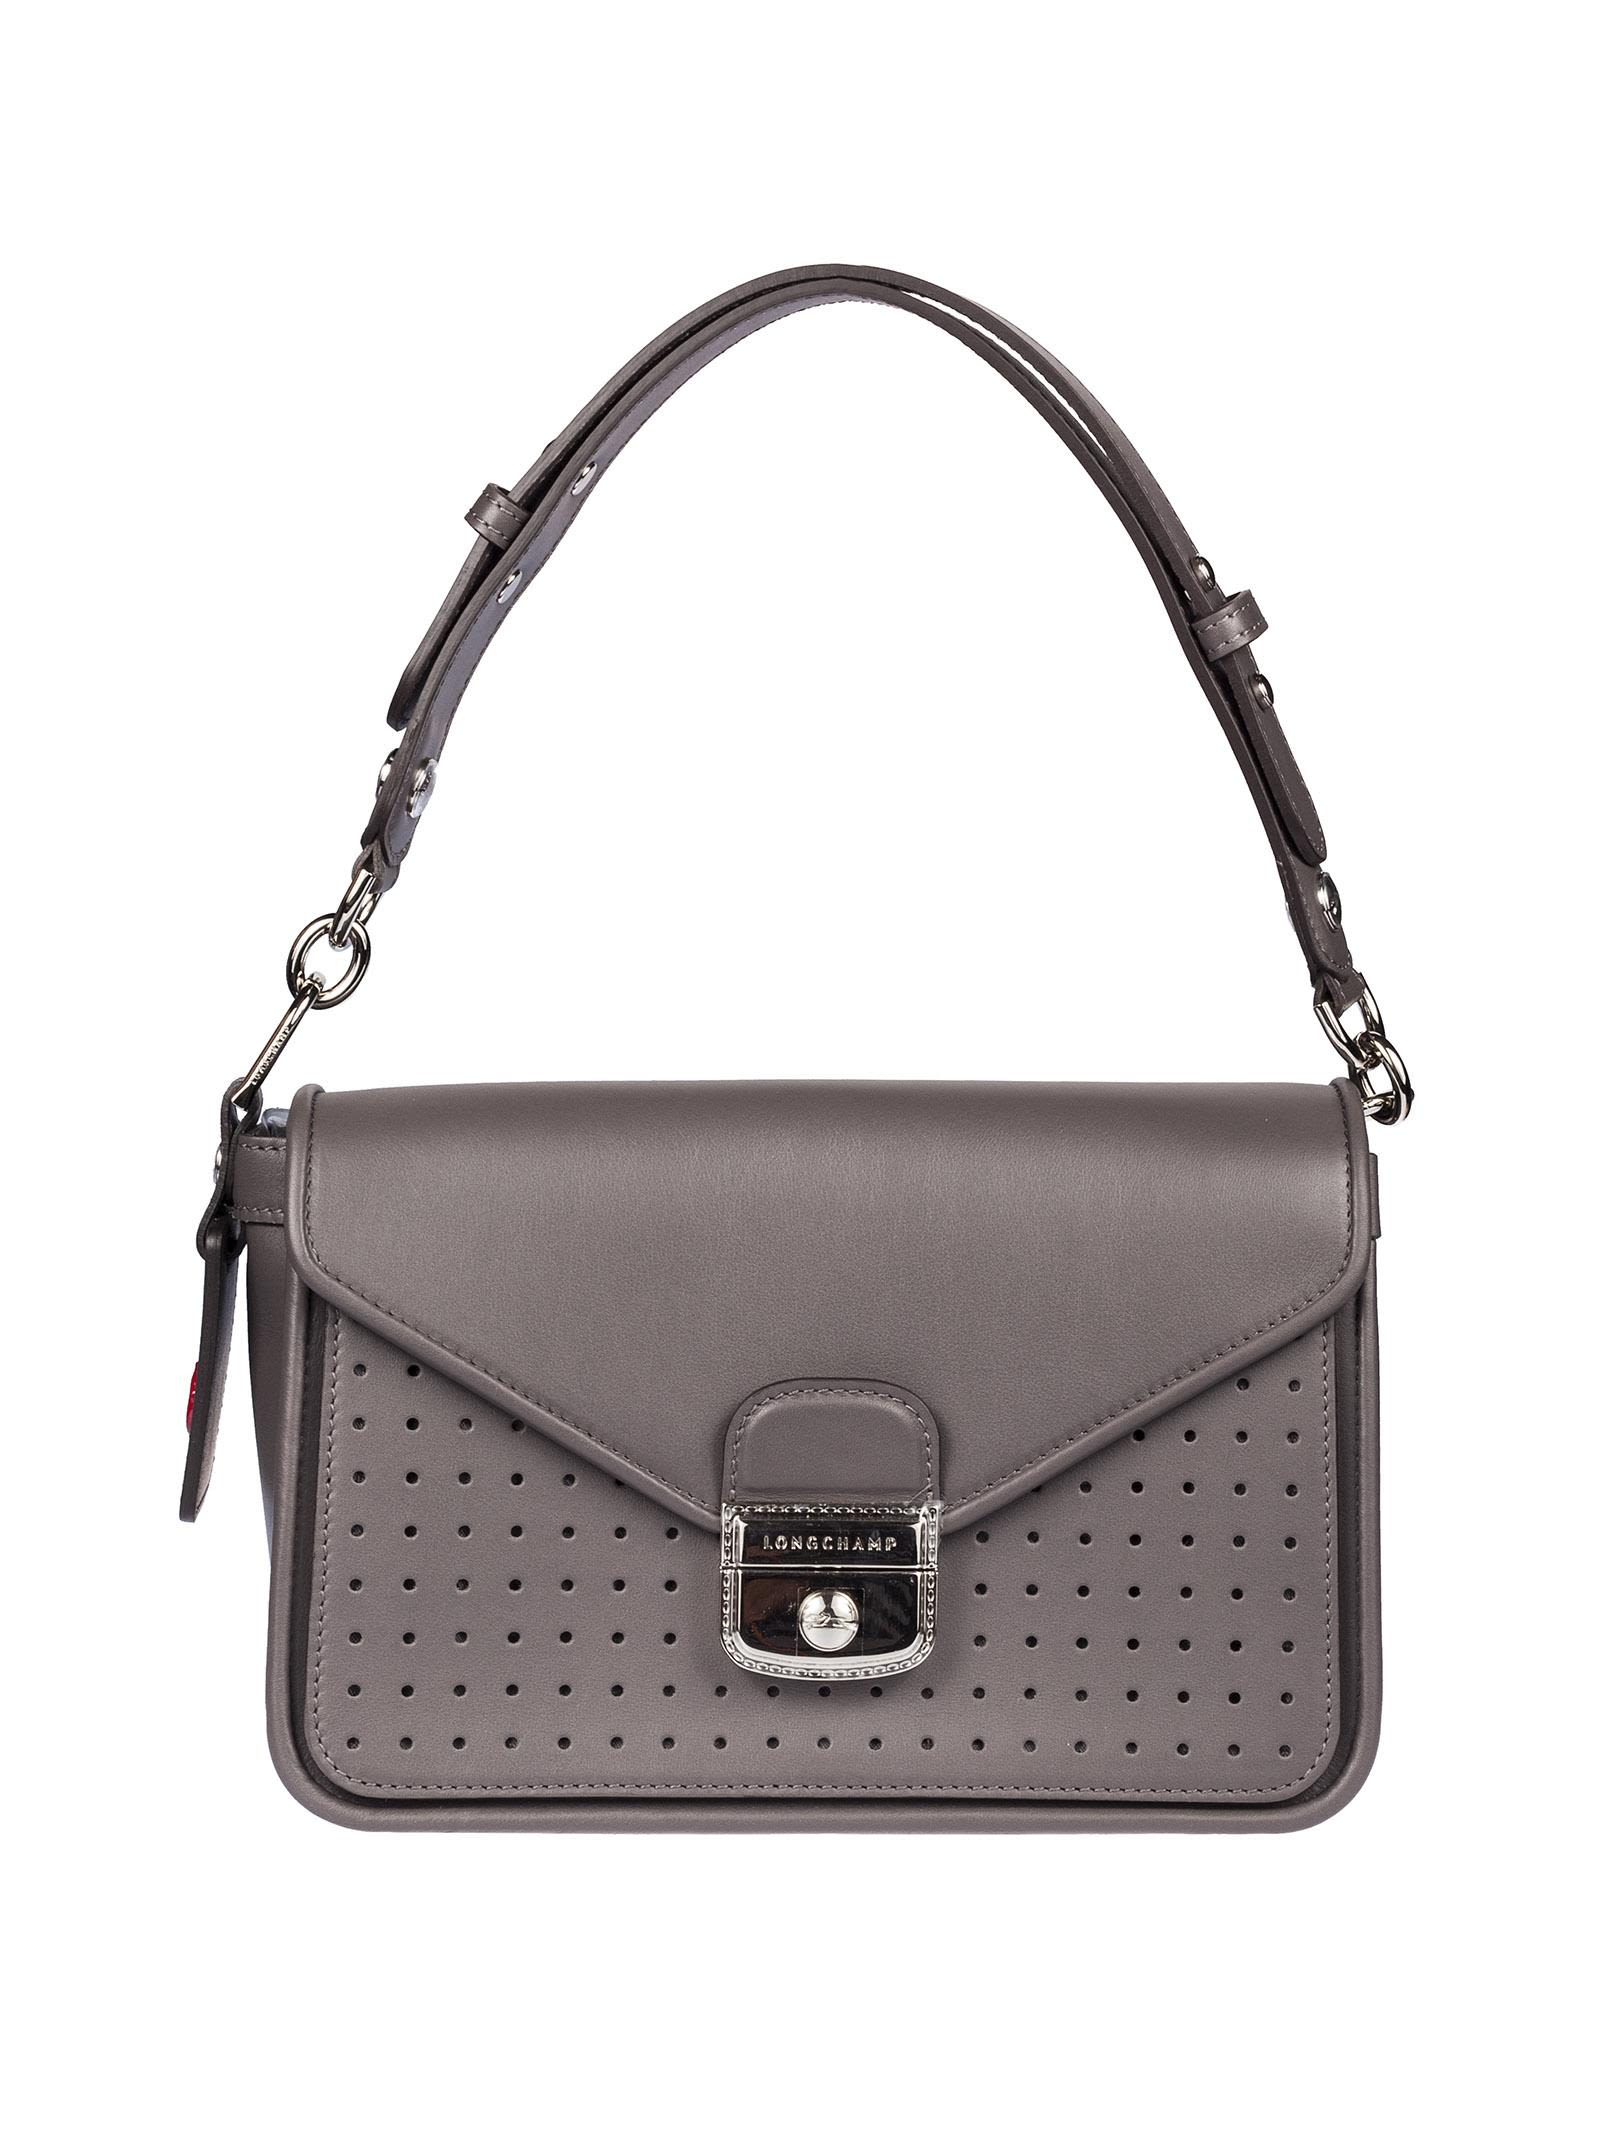 Longchamp Foldover Top Shoulder Bag